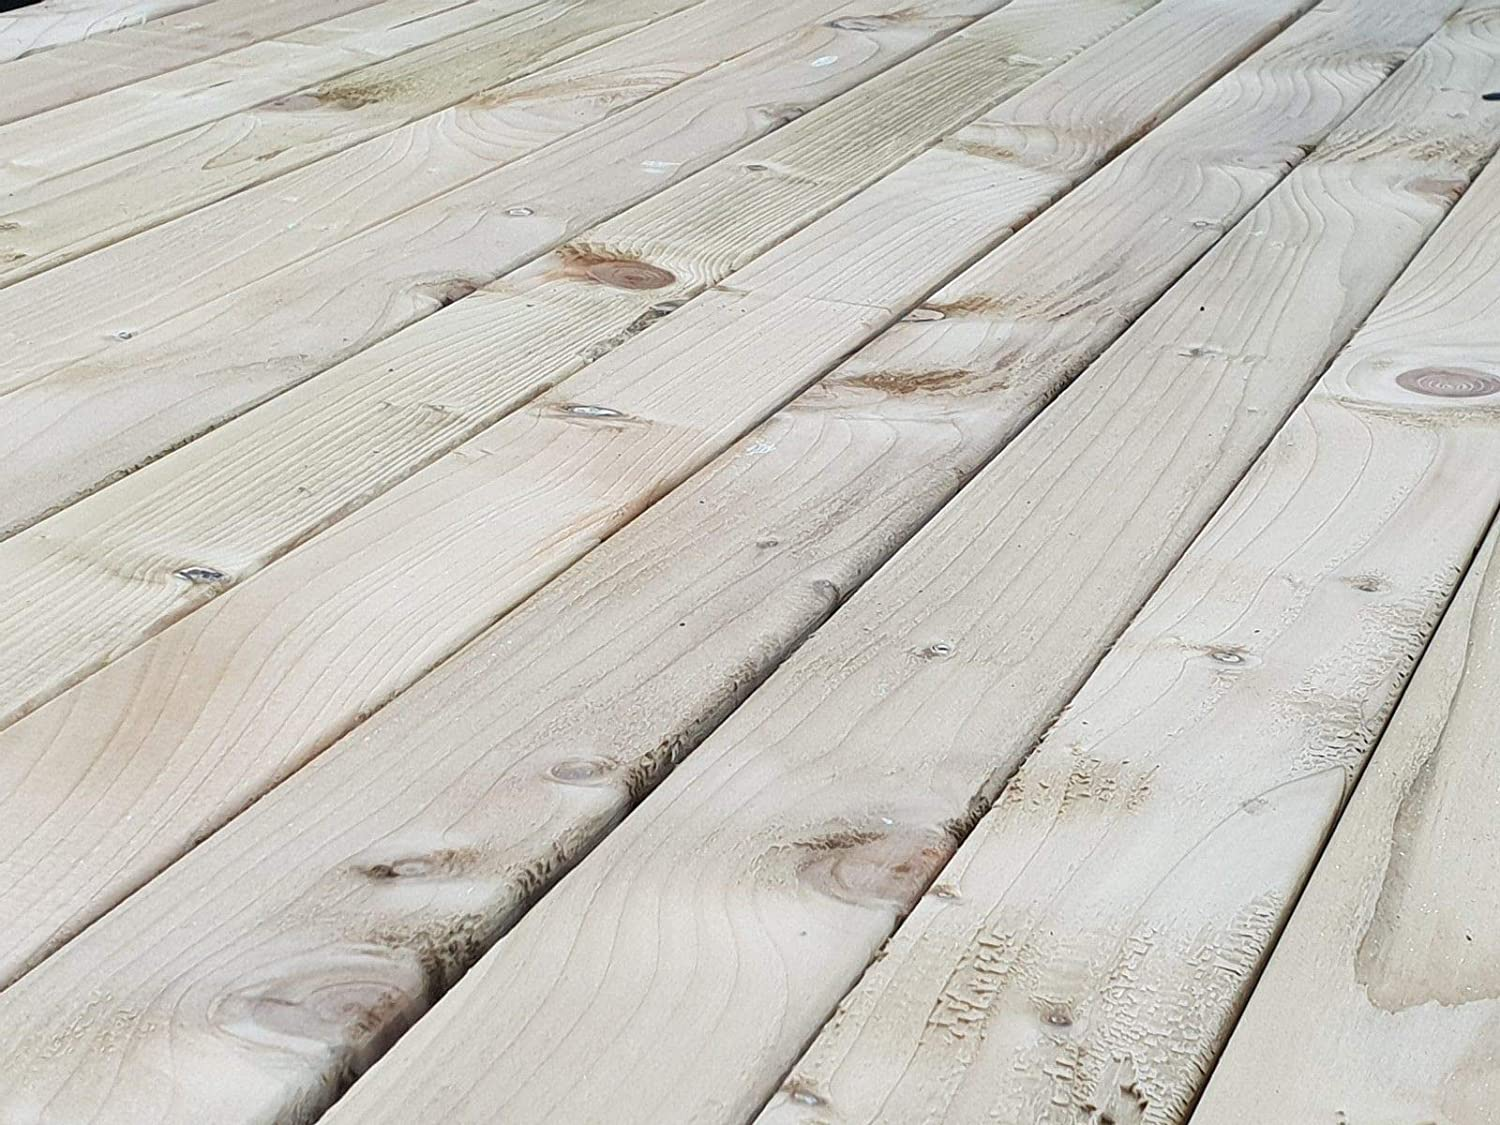 Pressure Treated Softwood Timber 4 x 2 - 2.4 Metres Pack of 4 100mm x 47mm